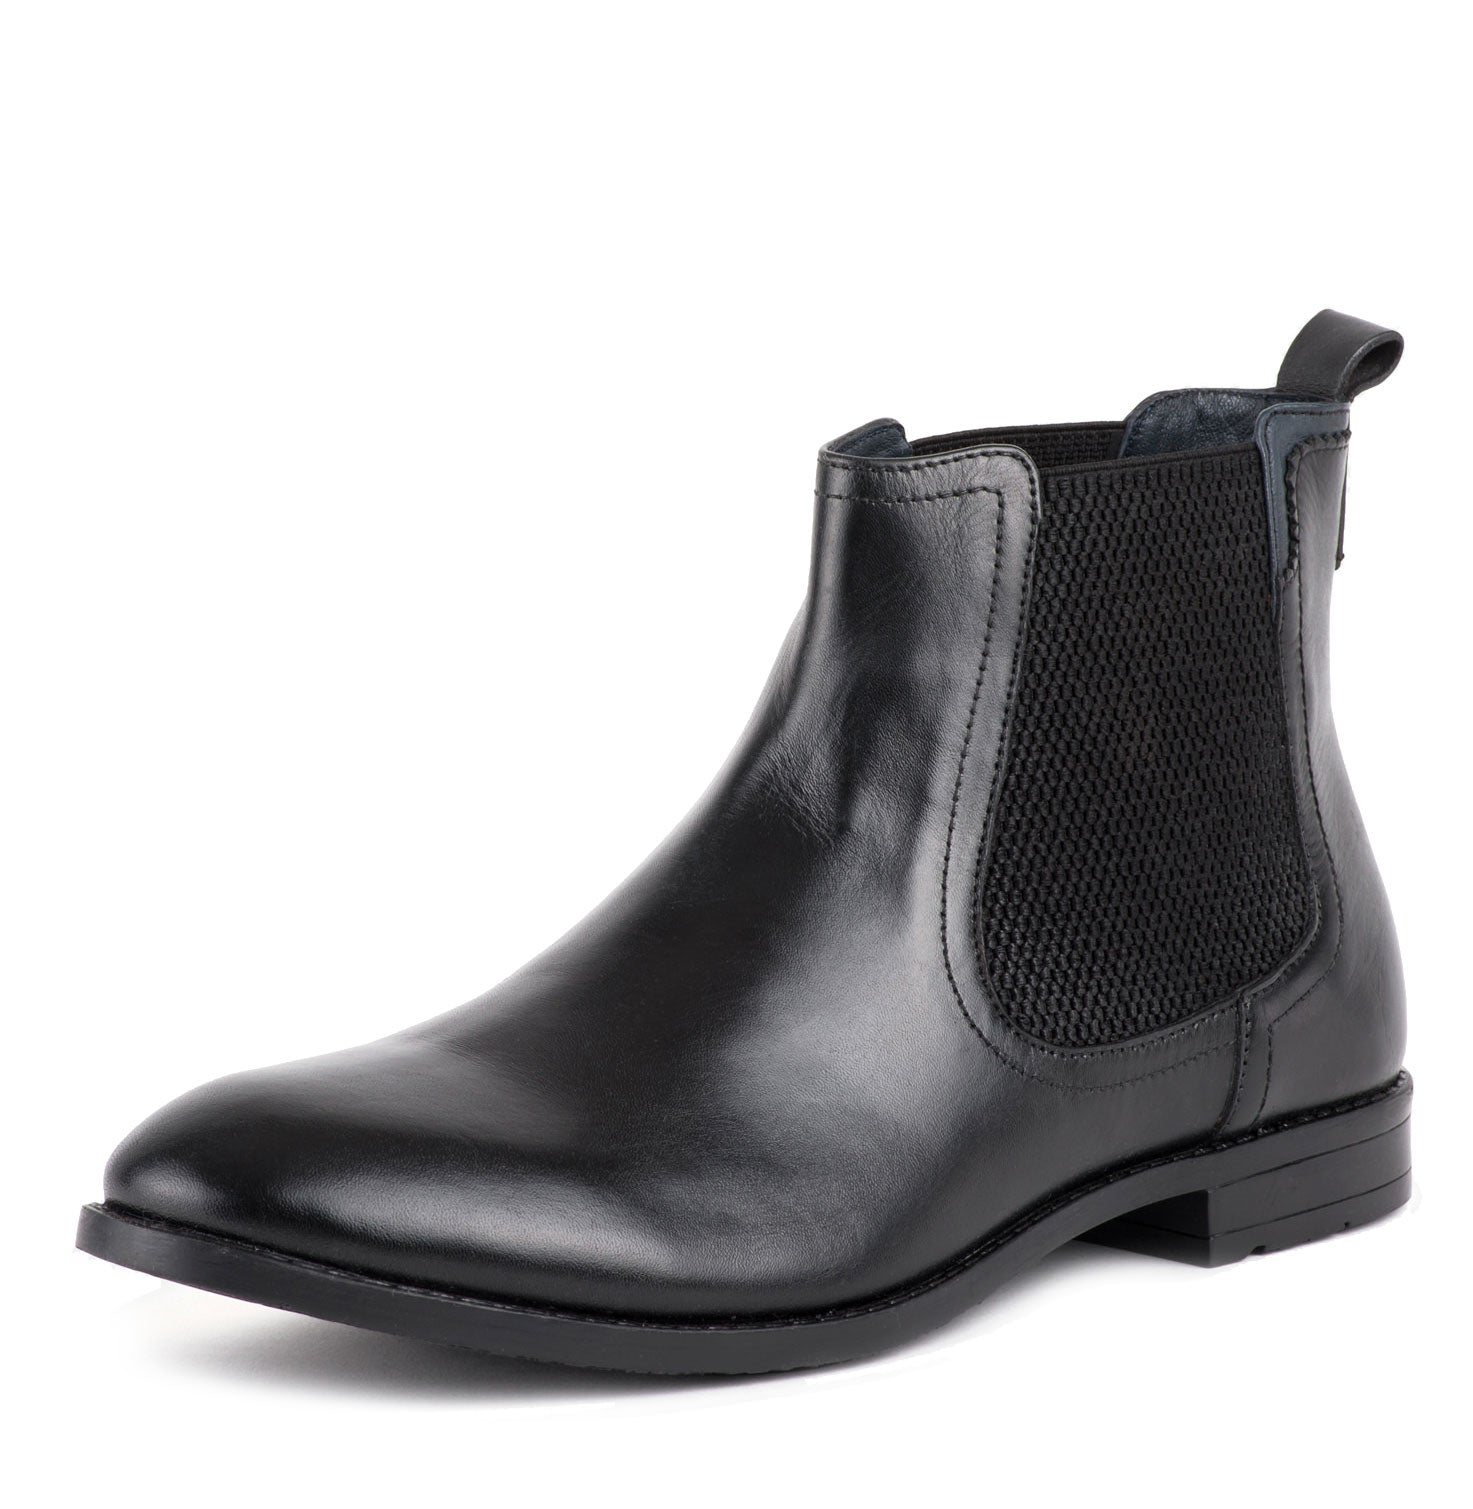 Black Leather Dealer Boot by Goodwin Smith